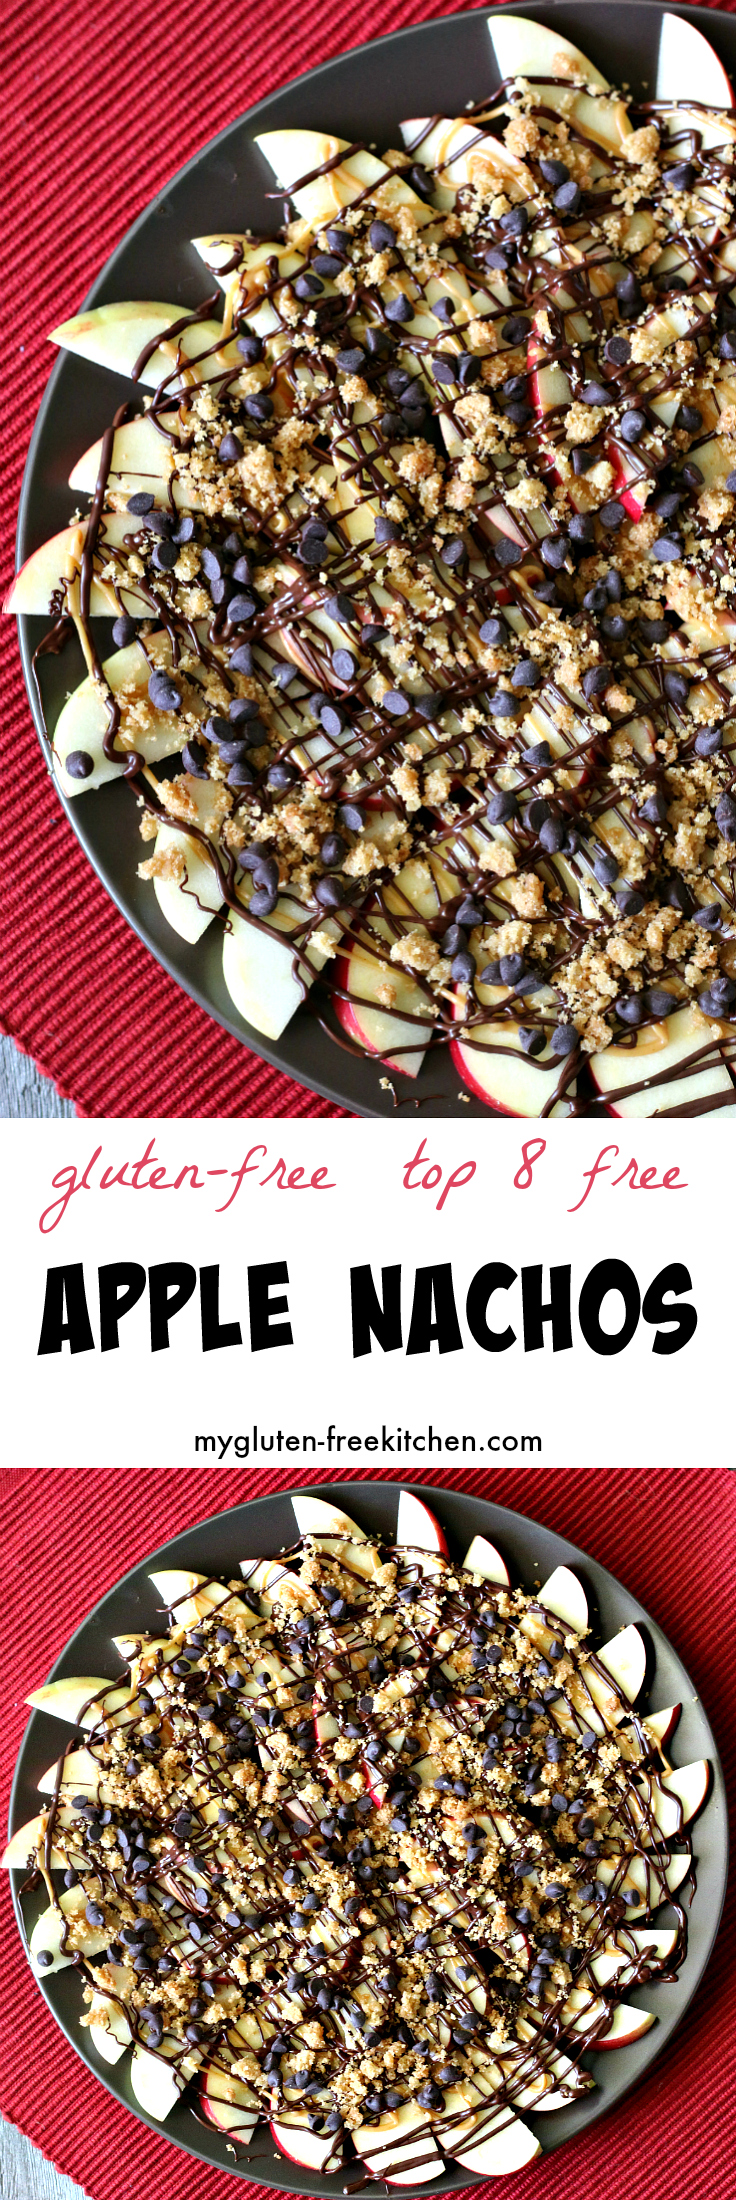 Gluten-free Apple Nachos recipe top 8 free